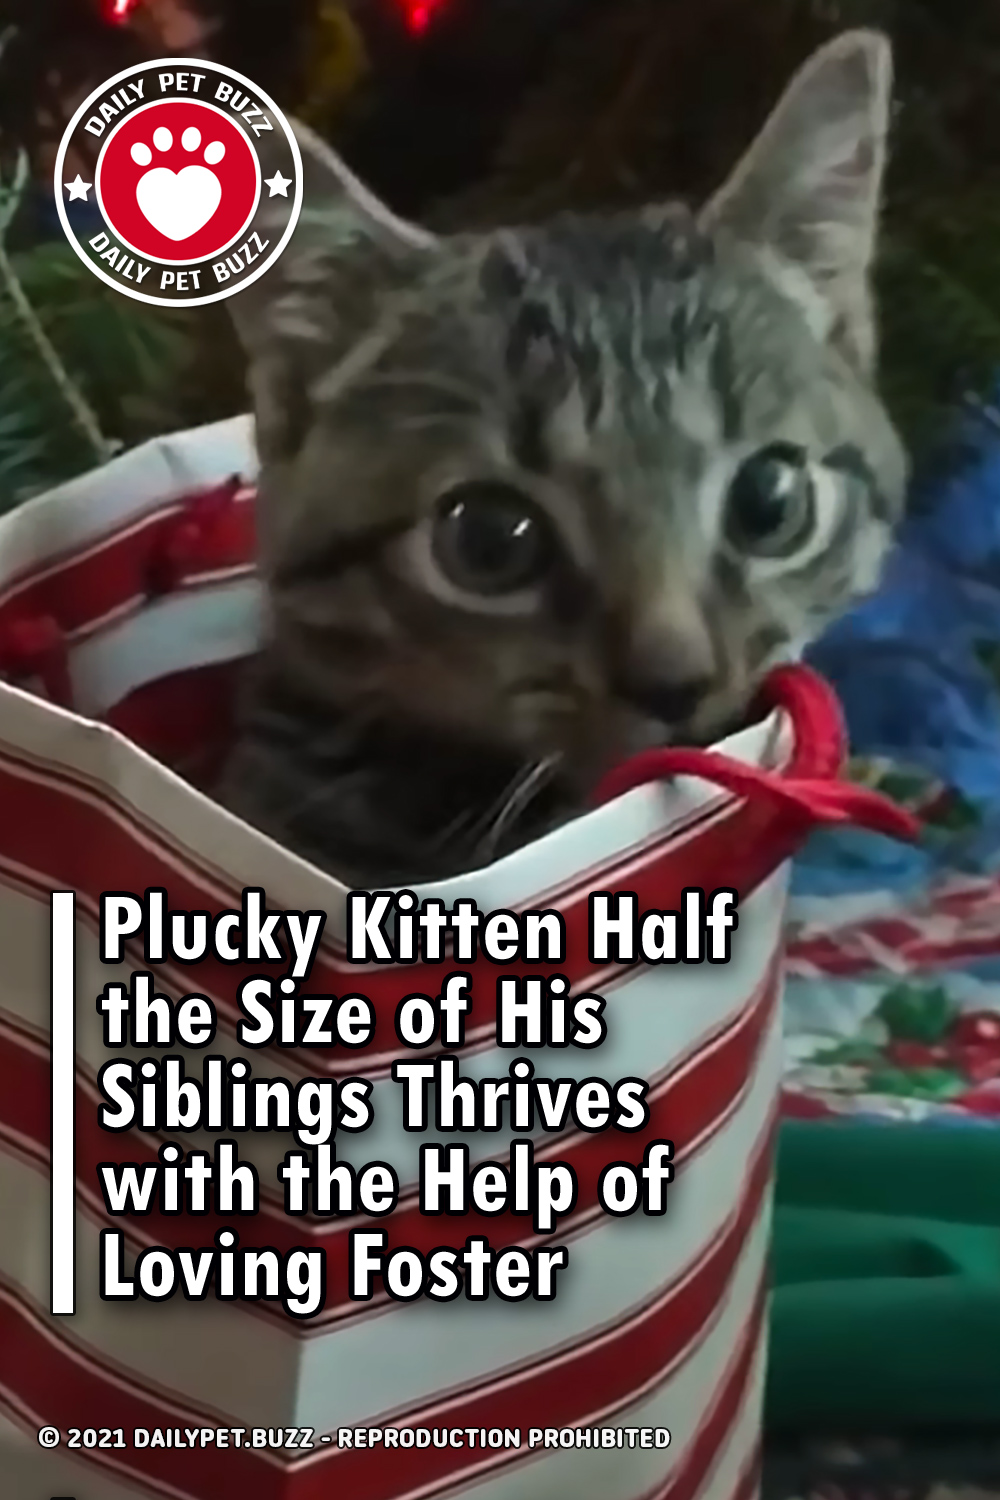 Plucky Kitten Half the Size of His Siblings Thrives with the Help of Loving Foster